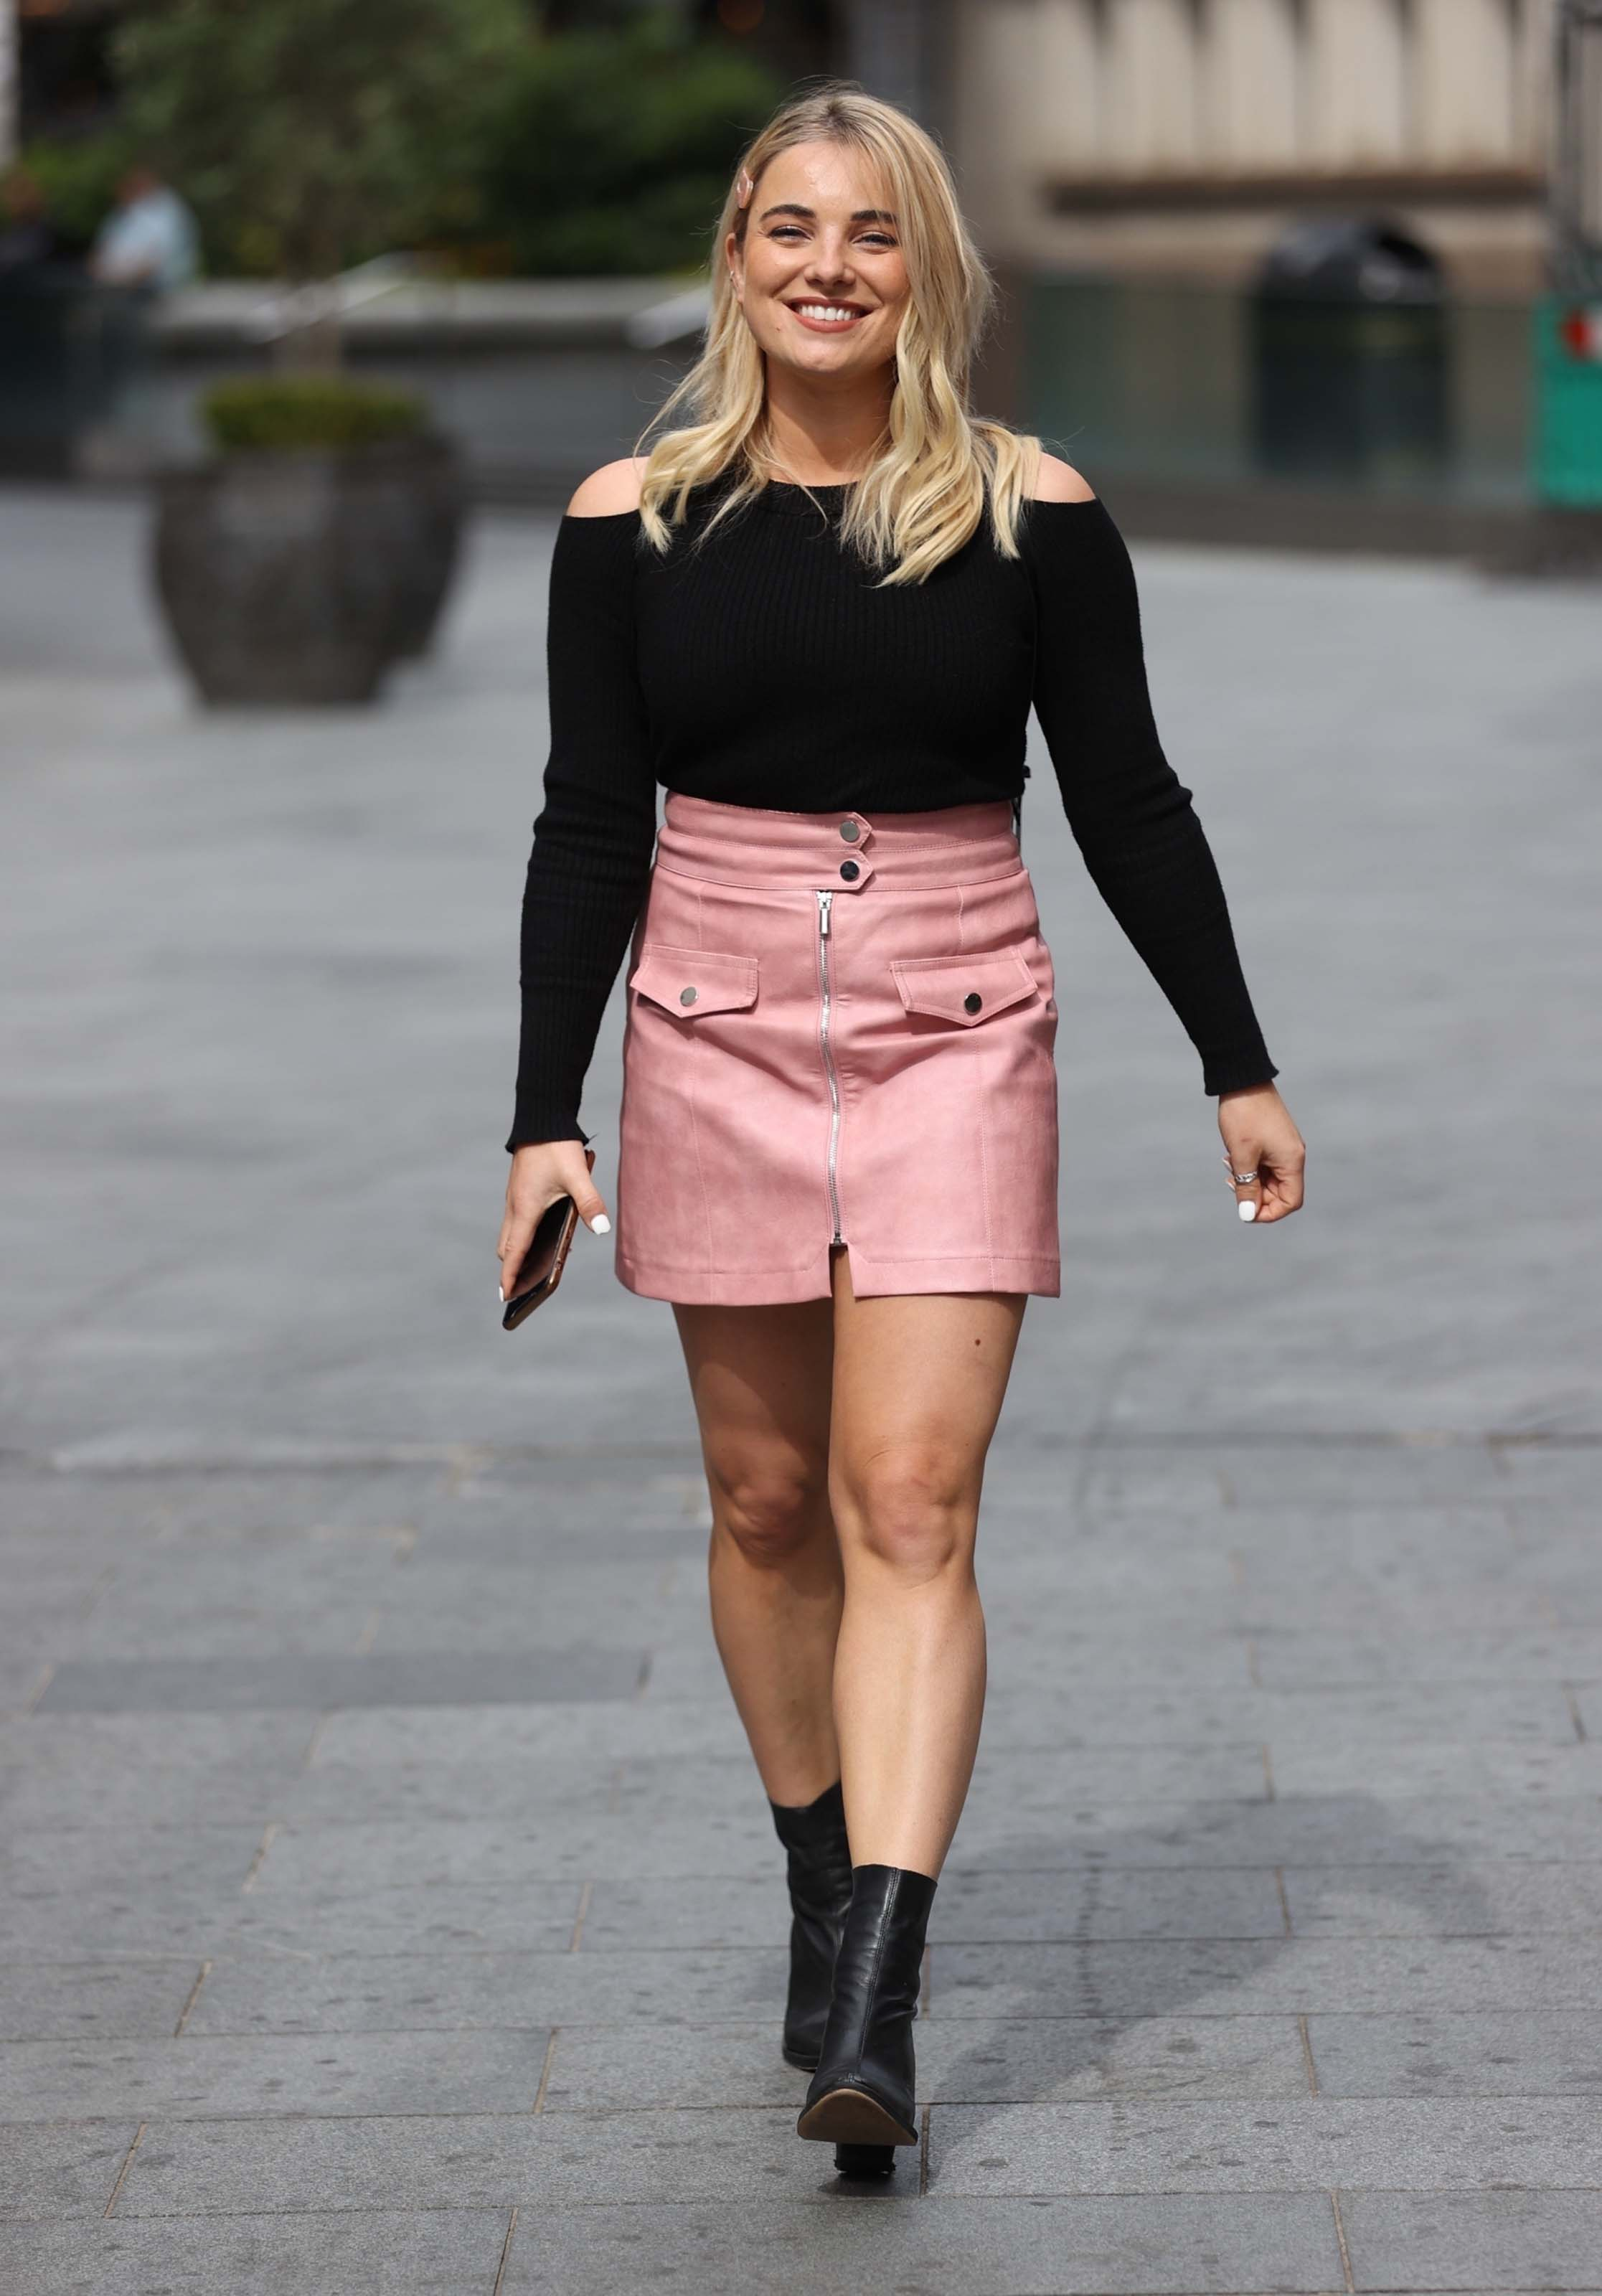 Sian Welby at Capital Breakfast show